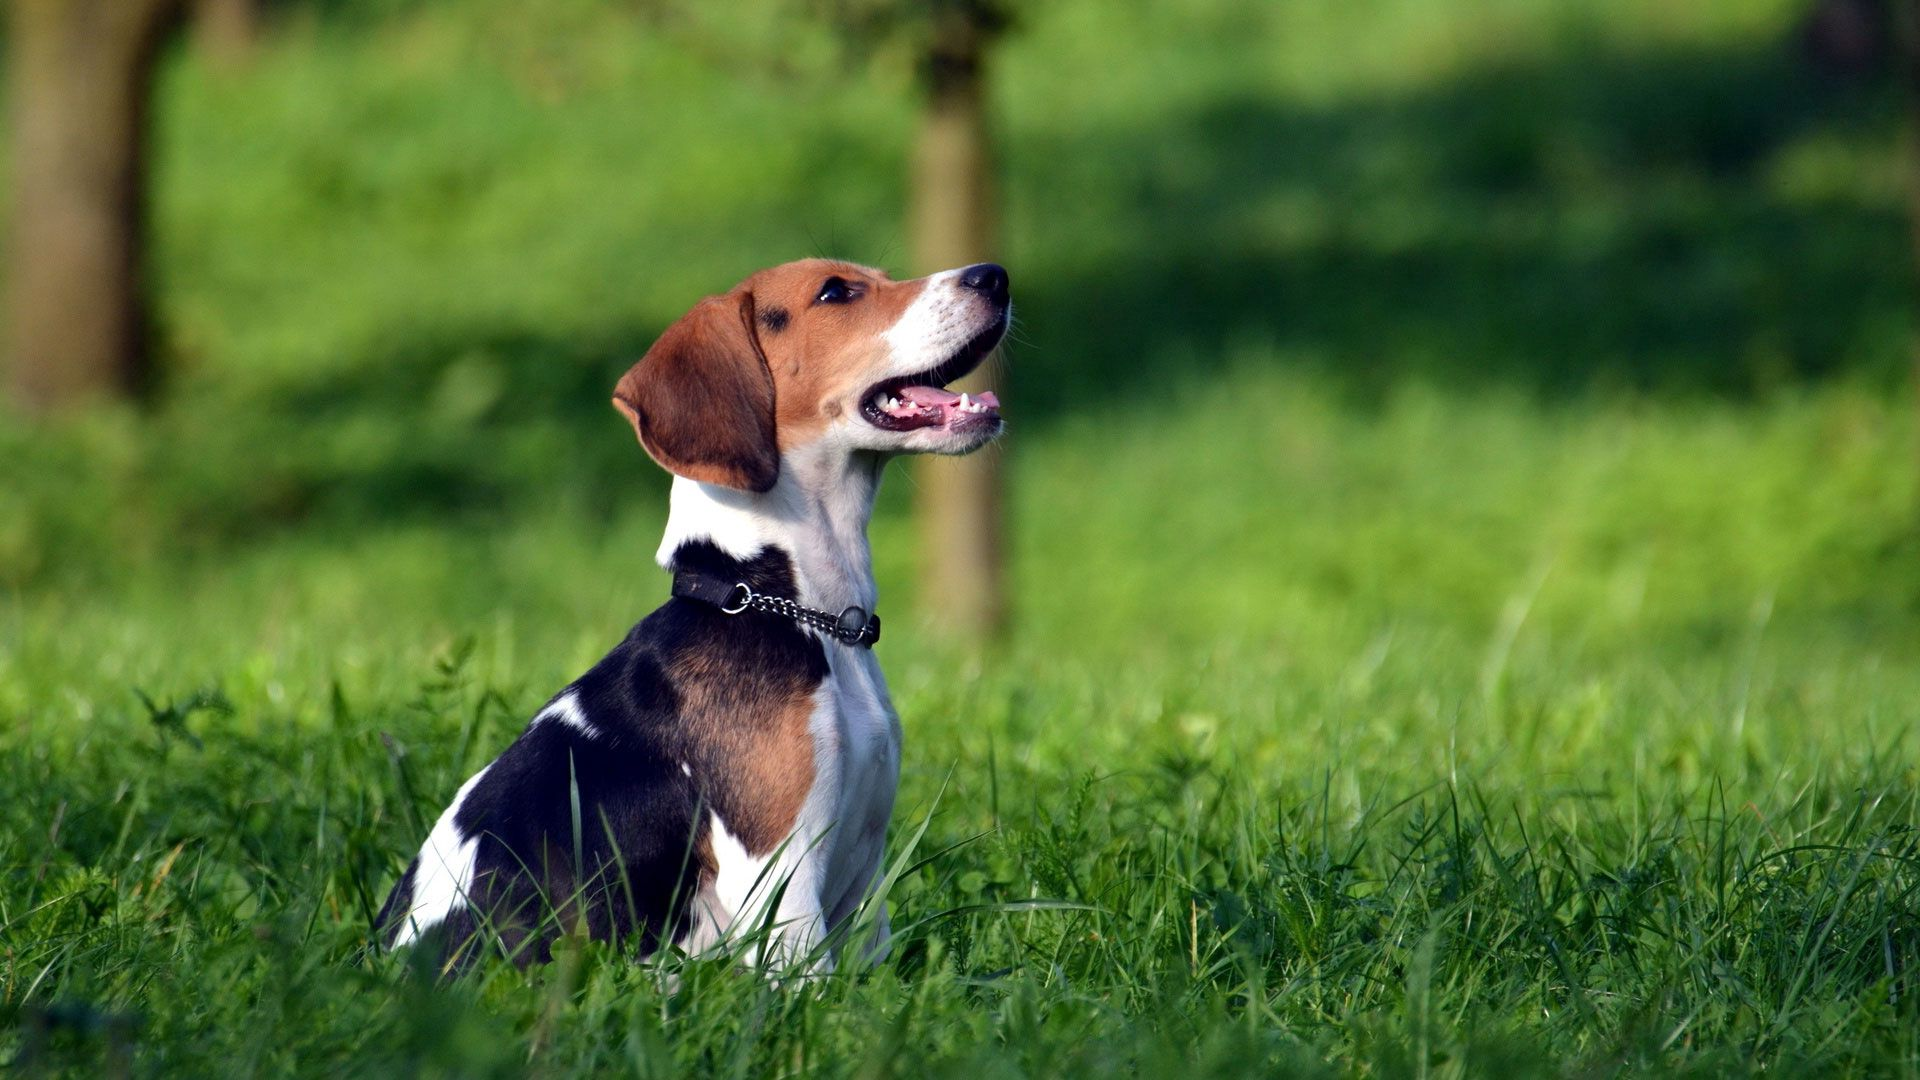 77356 download wallpaper Animals, Beagle, Puppy, Grass, Collar, Expectation, Waiting screensavers and pictures for free